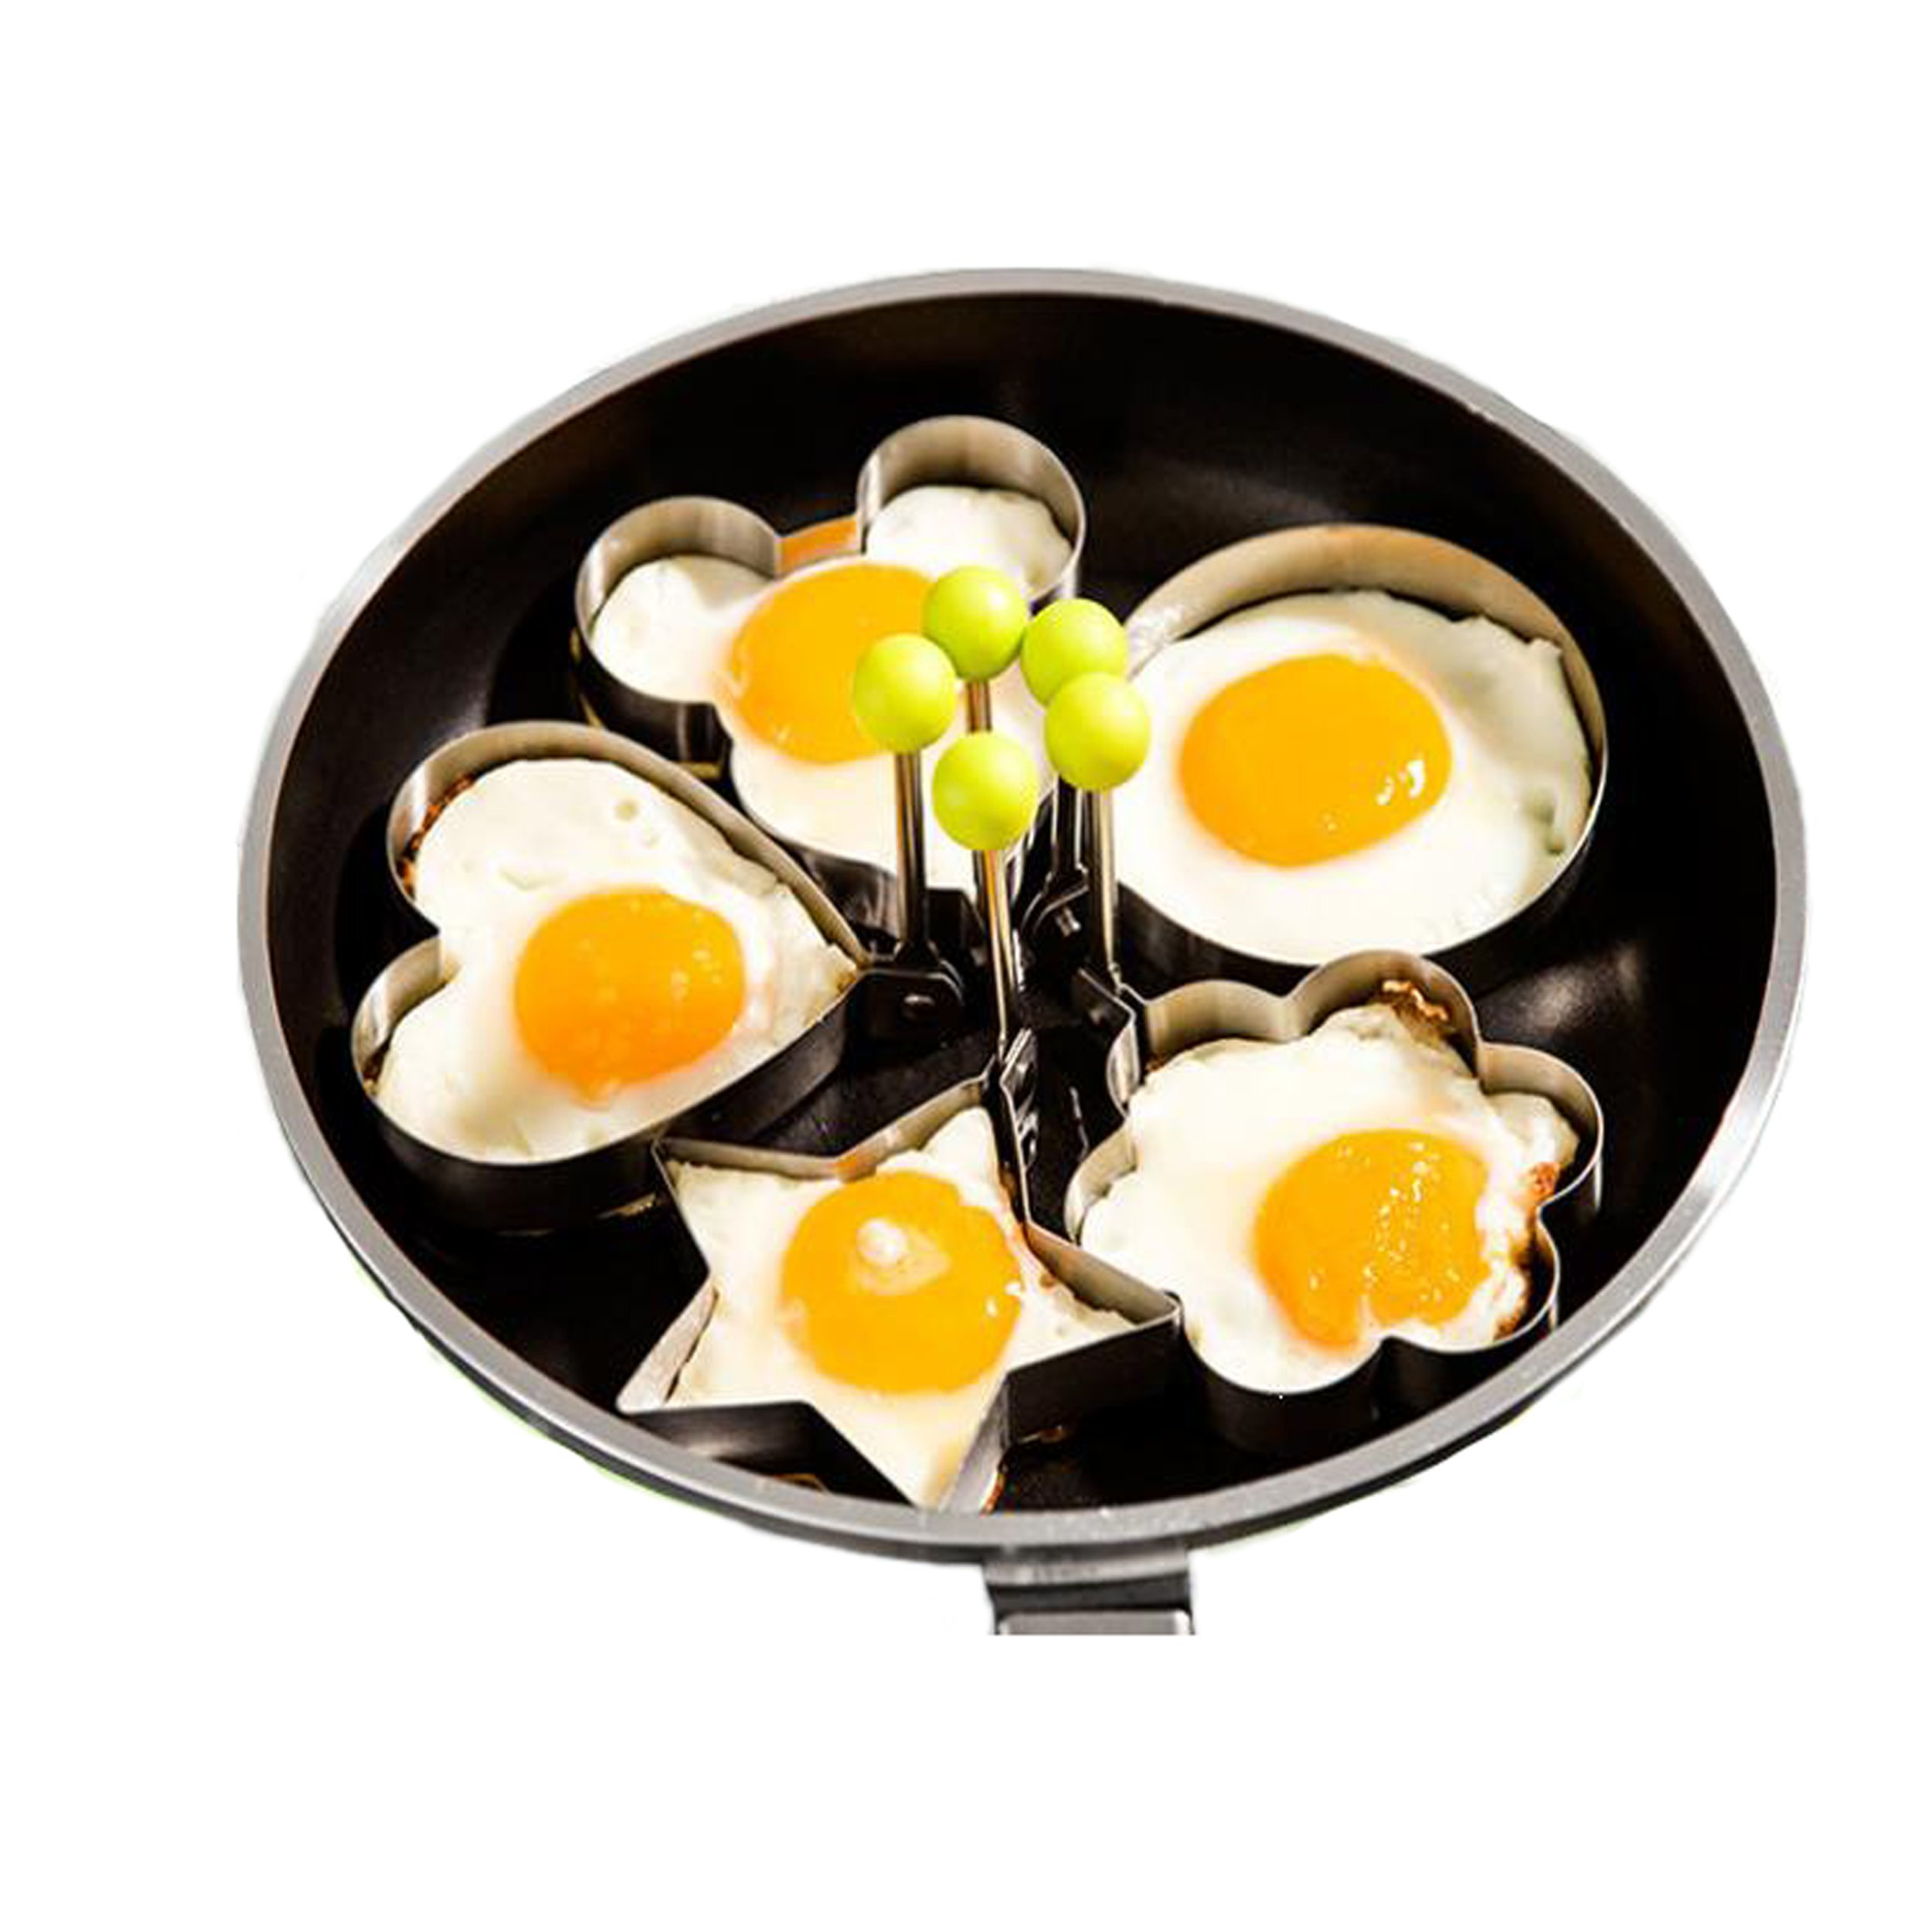 Maikerry Egg Ring Fried Egg Molds Stainless Steel 5PCS Different Shapes Fried Egg Cooker Egg Form for Making Cakes, Pancakes, Meatloaf, Biscuits Kitchen Tool.